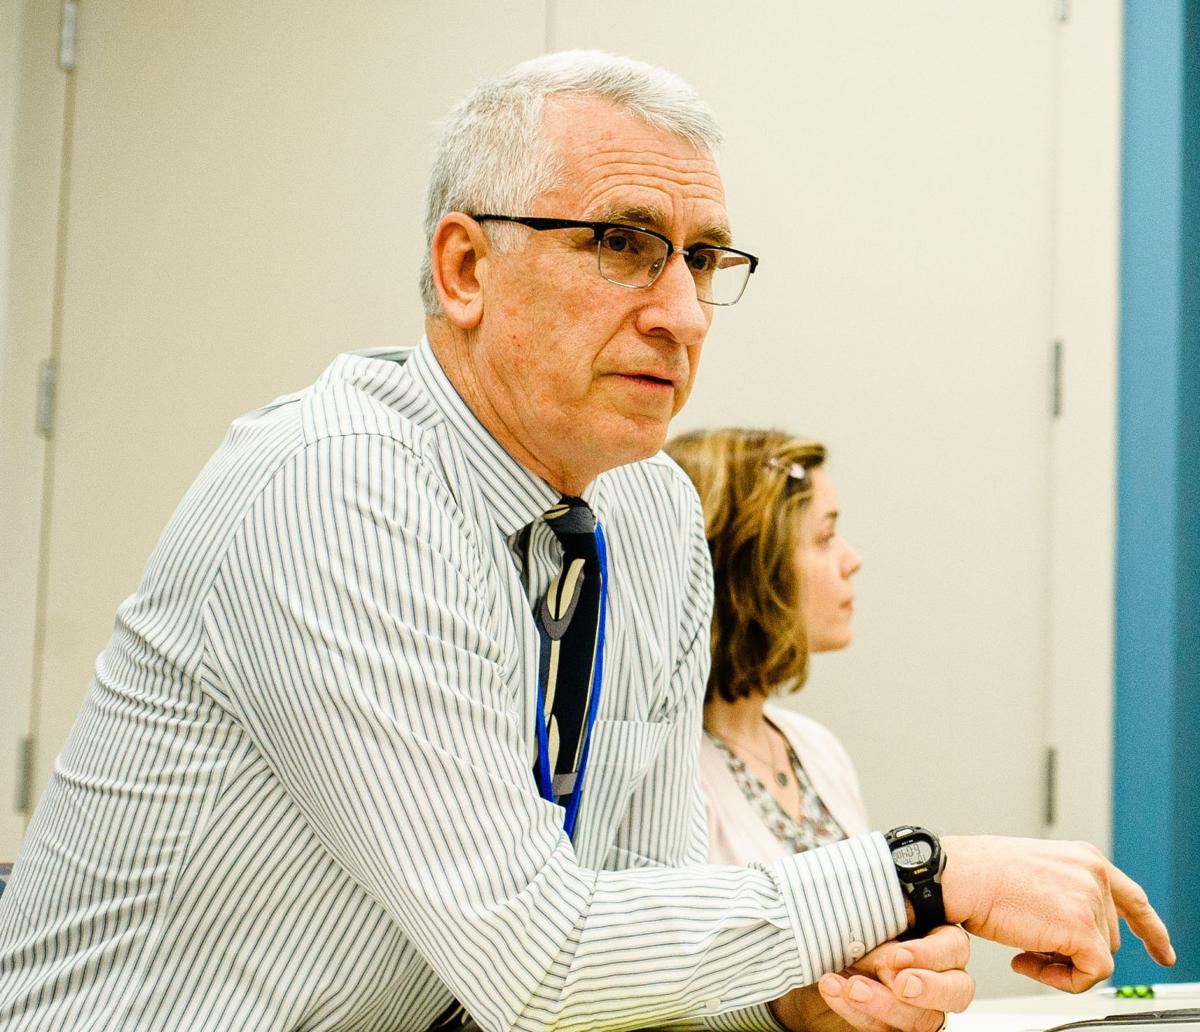 Dr. Wade Kartchner is the health director of the Rappahannock-Rapidan Health District of the Virginia Department of Health.